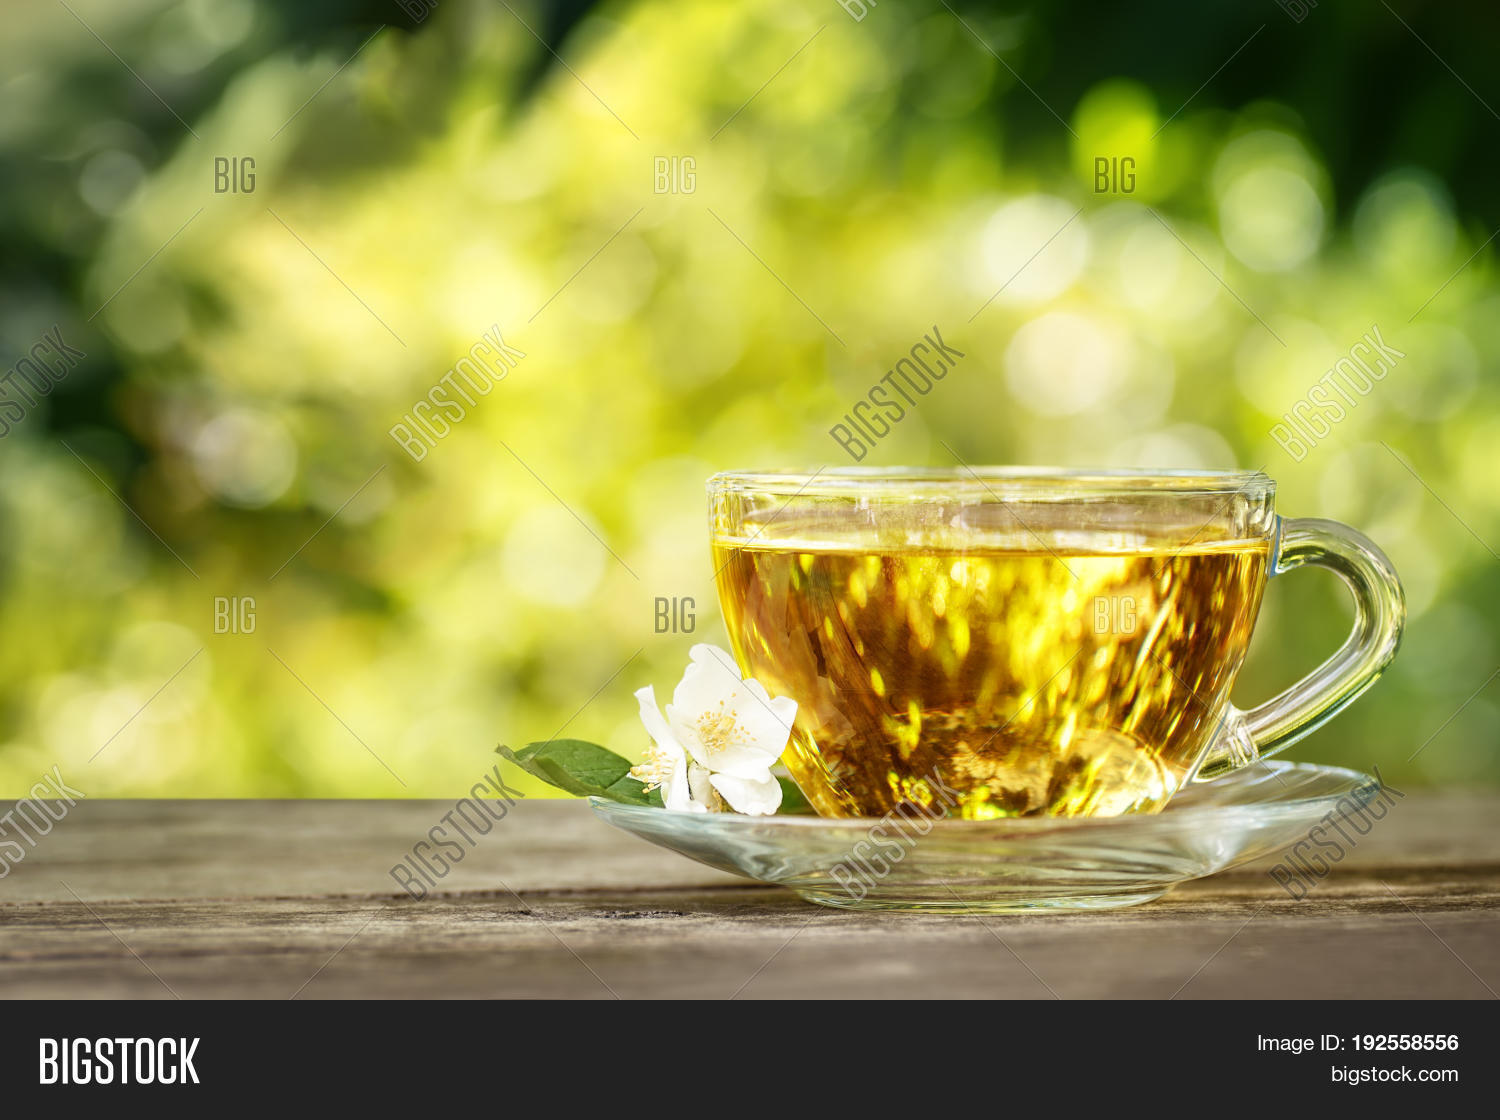 Jasmine Tea Jasmine Image Photo Free Trial Bigstock